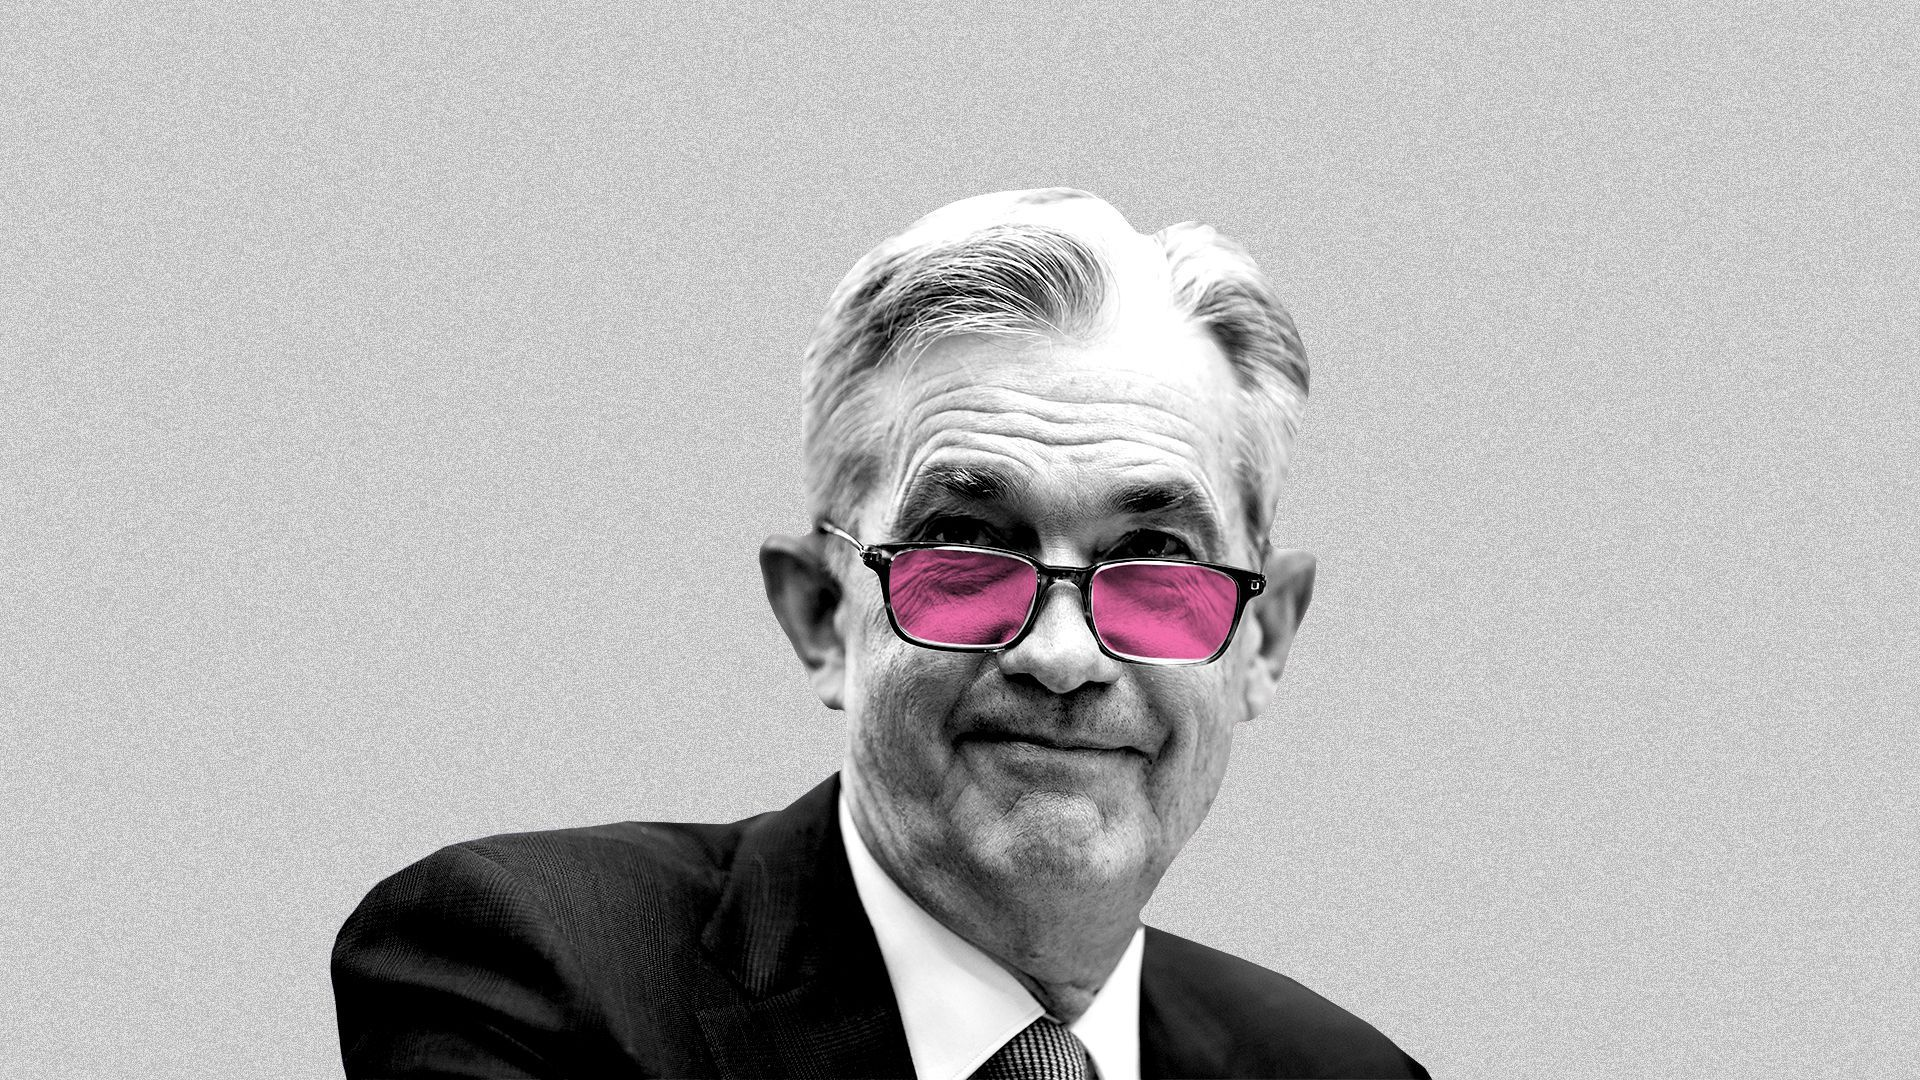 Fed chairman Jerome Powell wearing rose-colored glasses.